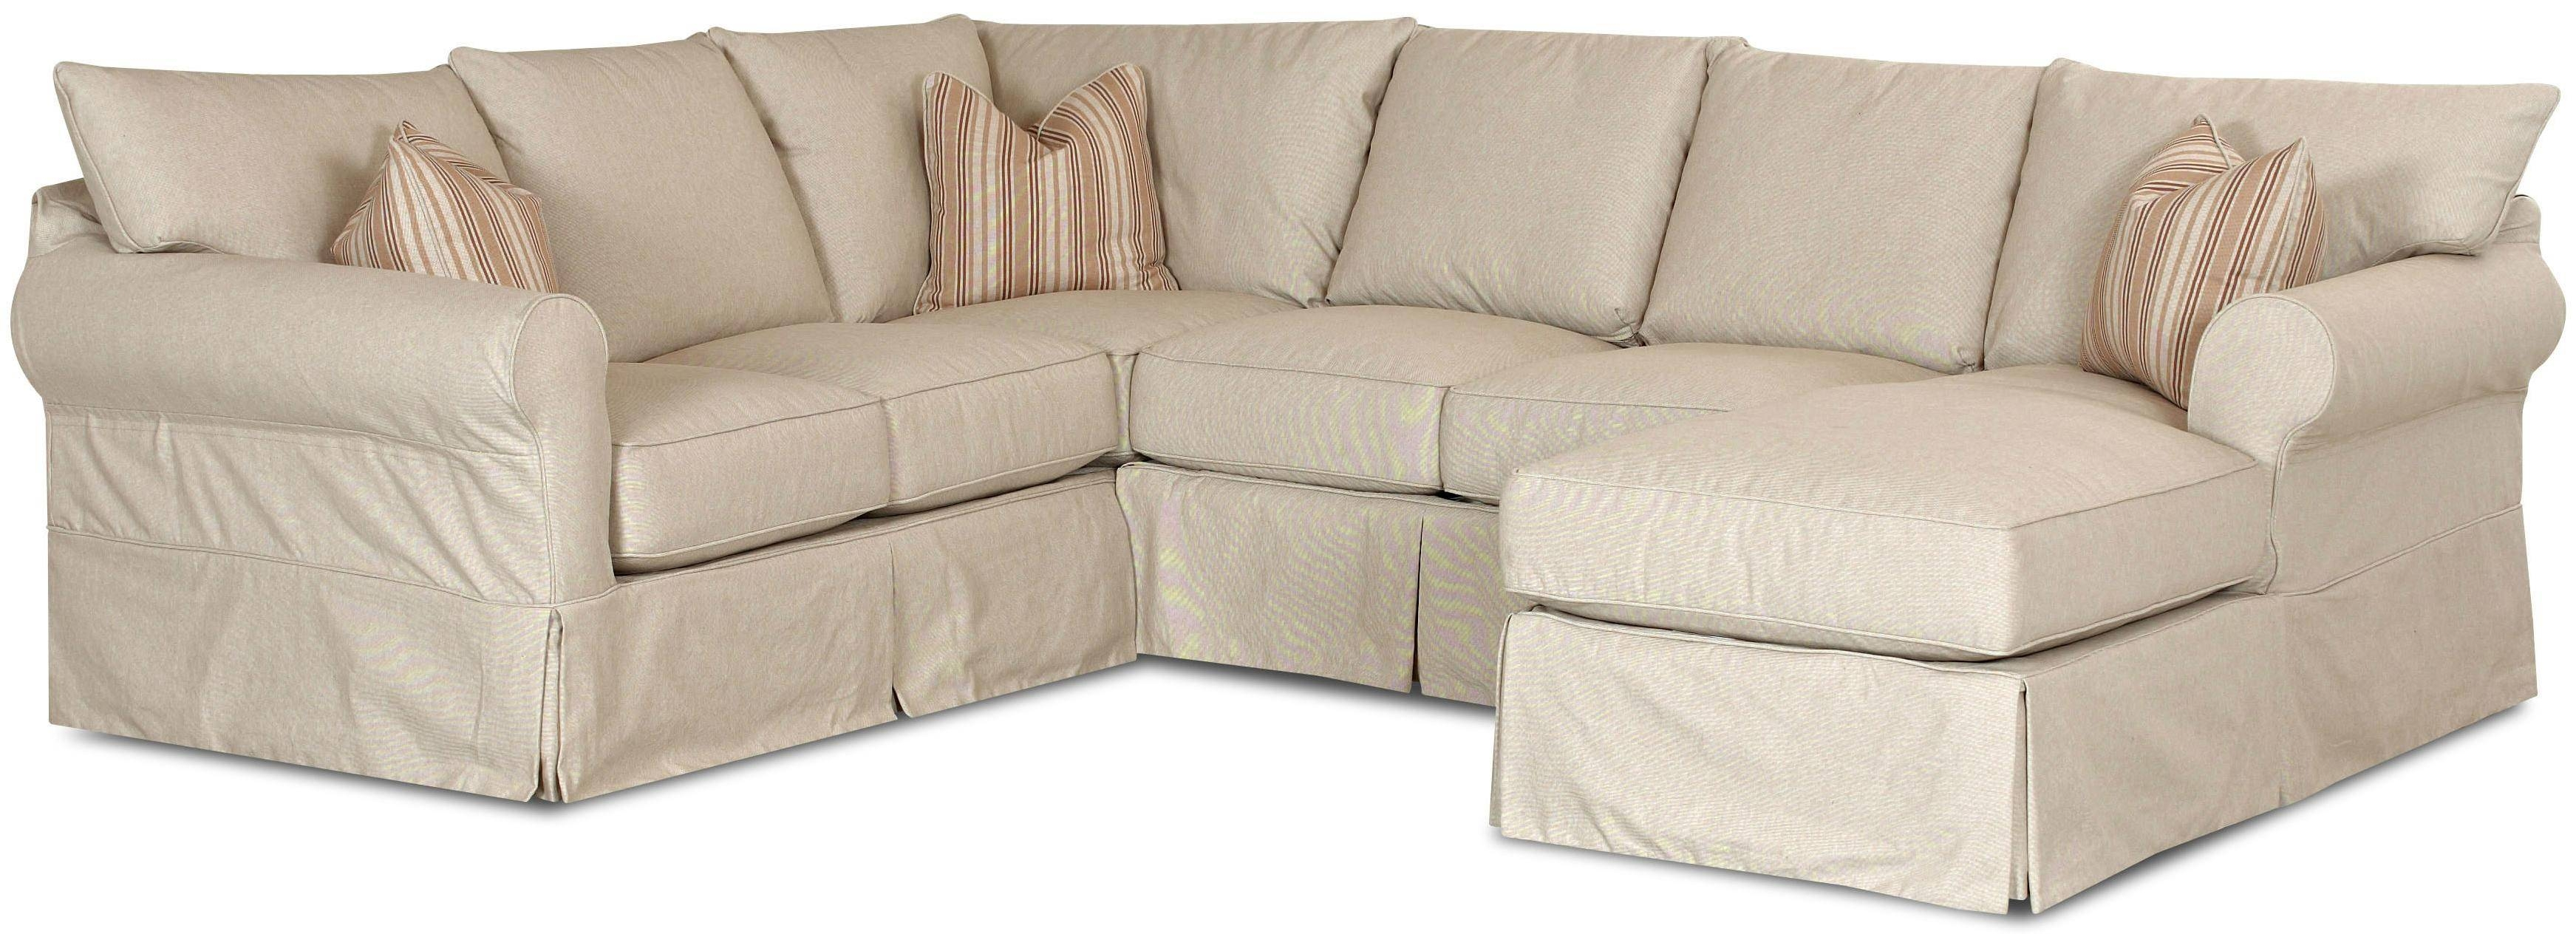 The Most Popular Sectional Sofa Slipcovers Cheap 22 In King Size with Sleeper Sofa Slipcovers (Image 12 of 15)